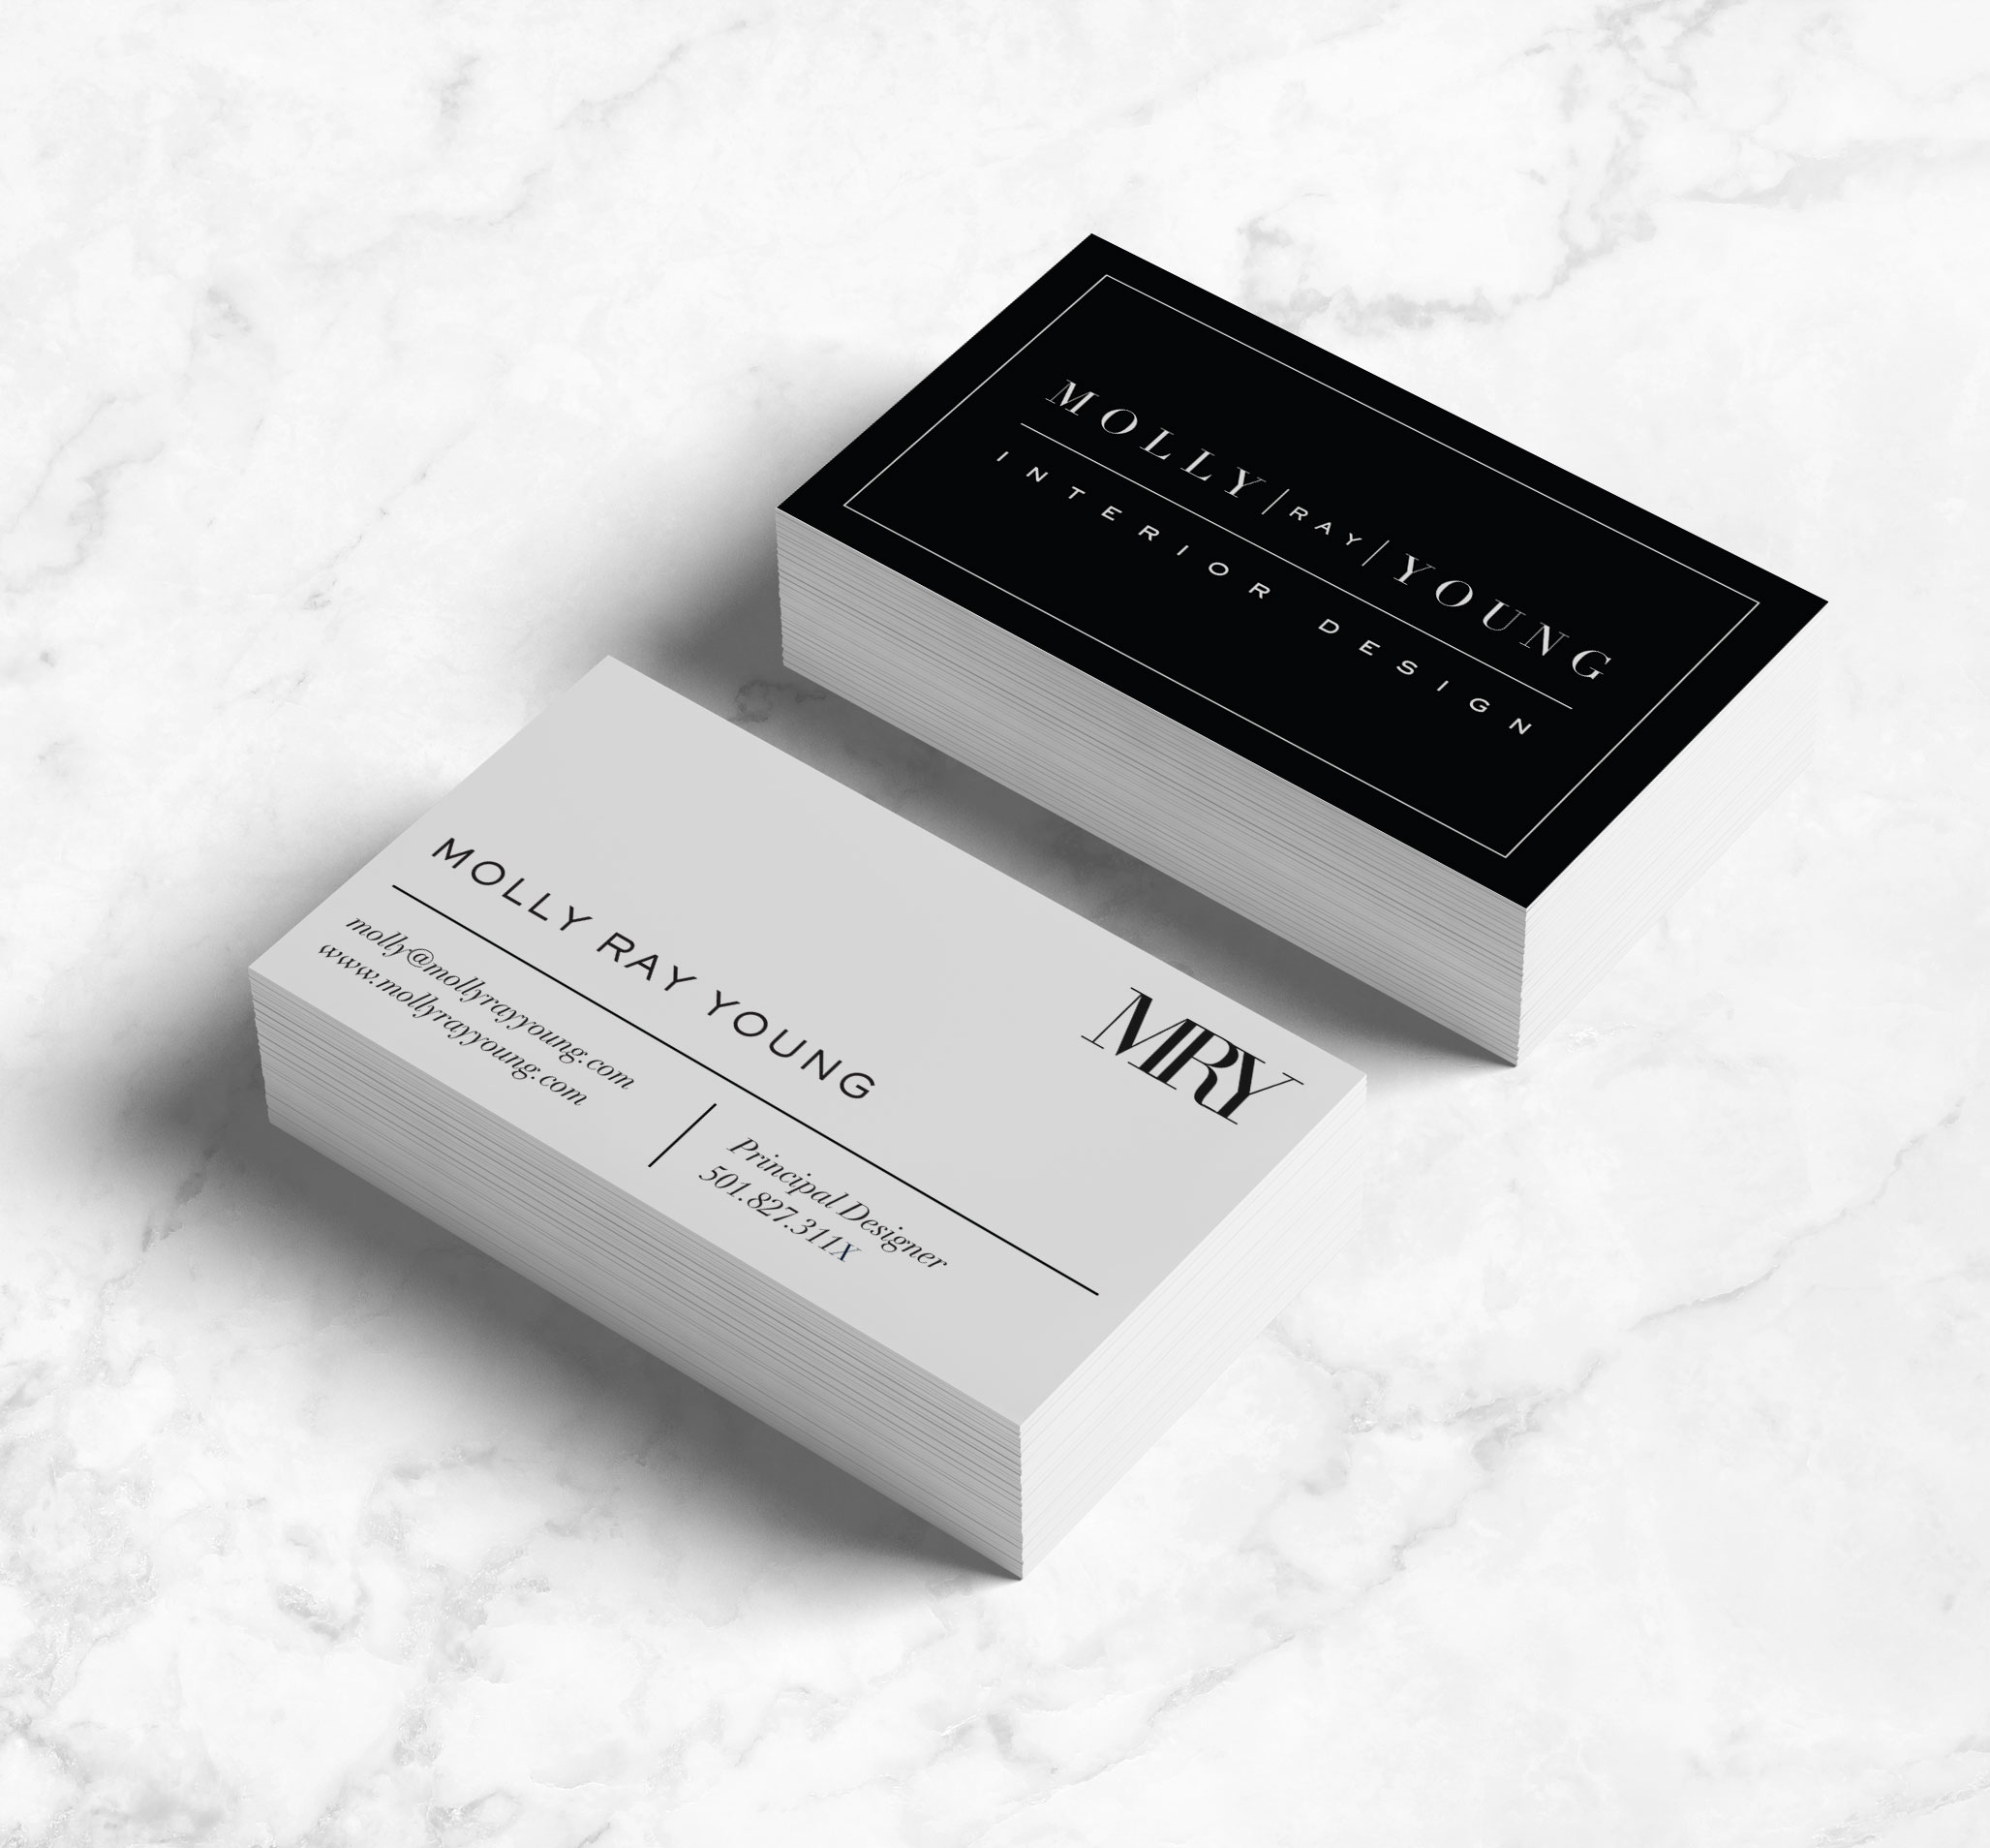 molly-ray-young---business-cards.jpg